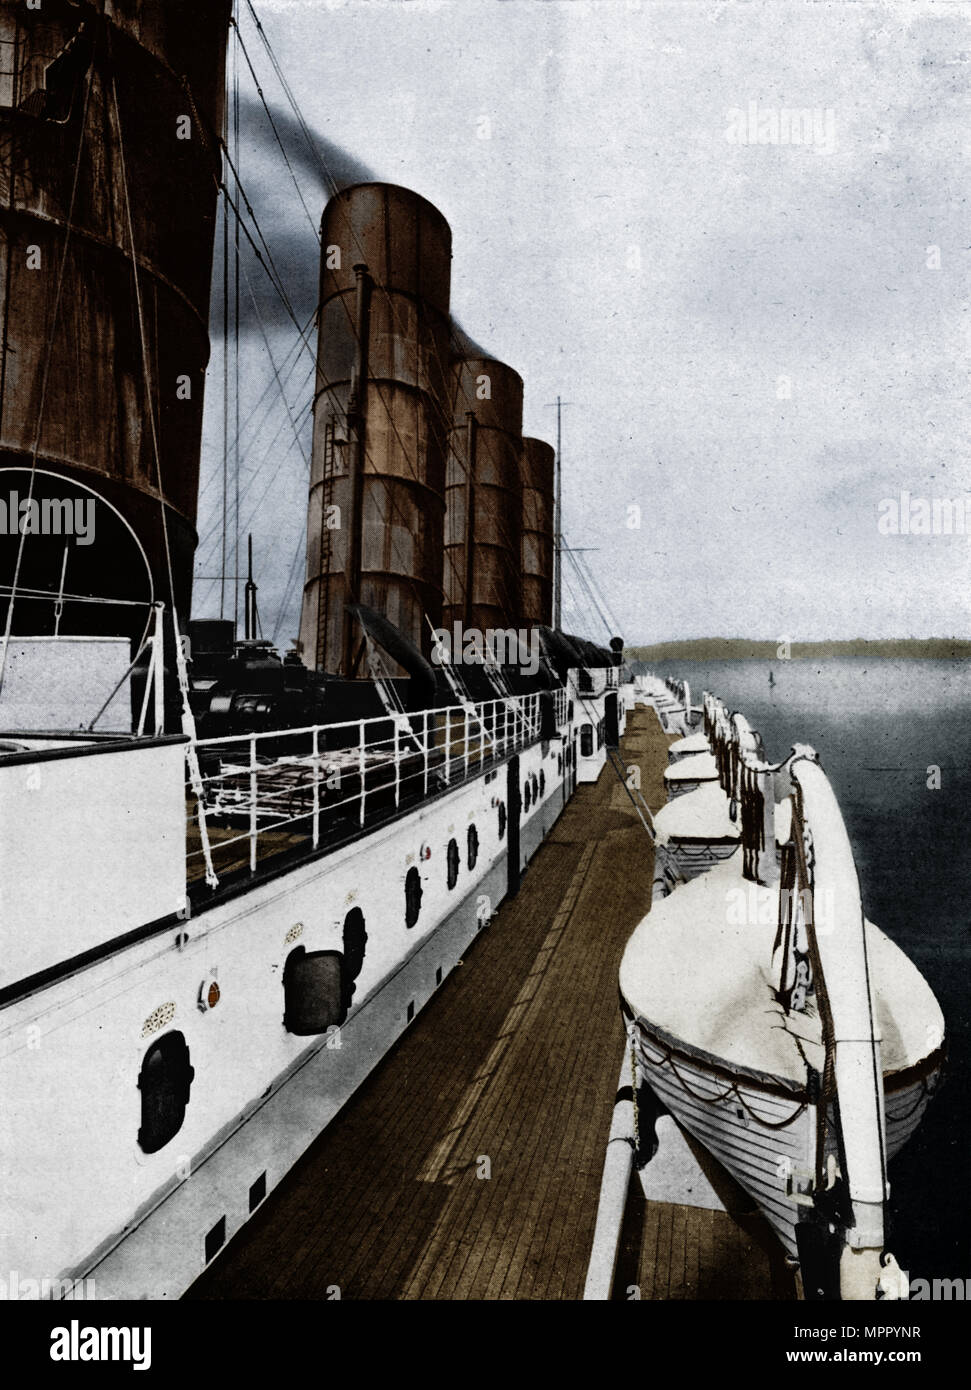 'The boat deck of the Lusitania, showing lifeboats', 1915. Artist: Unknown. - Stock Image